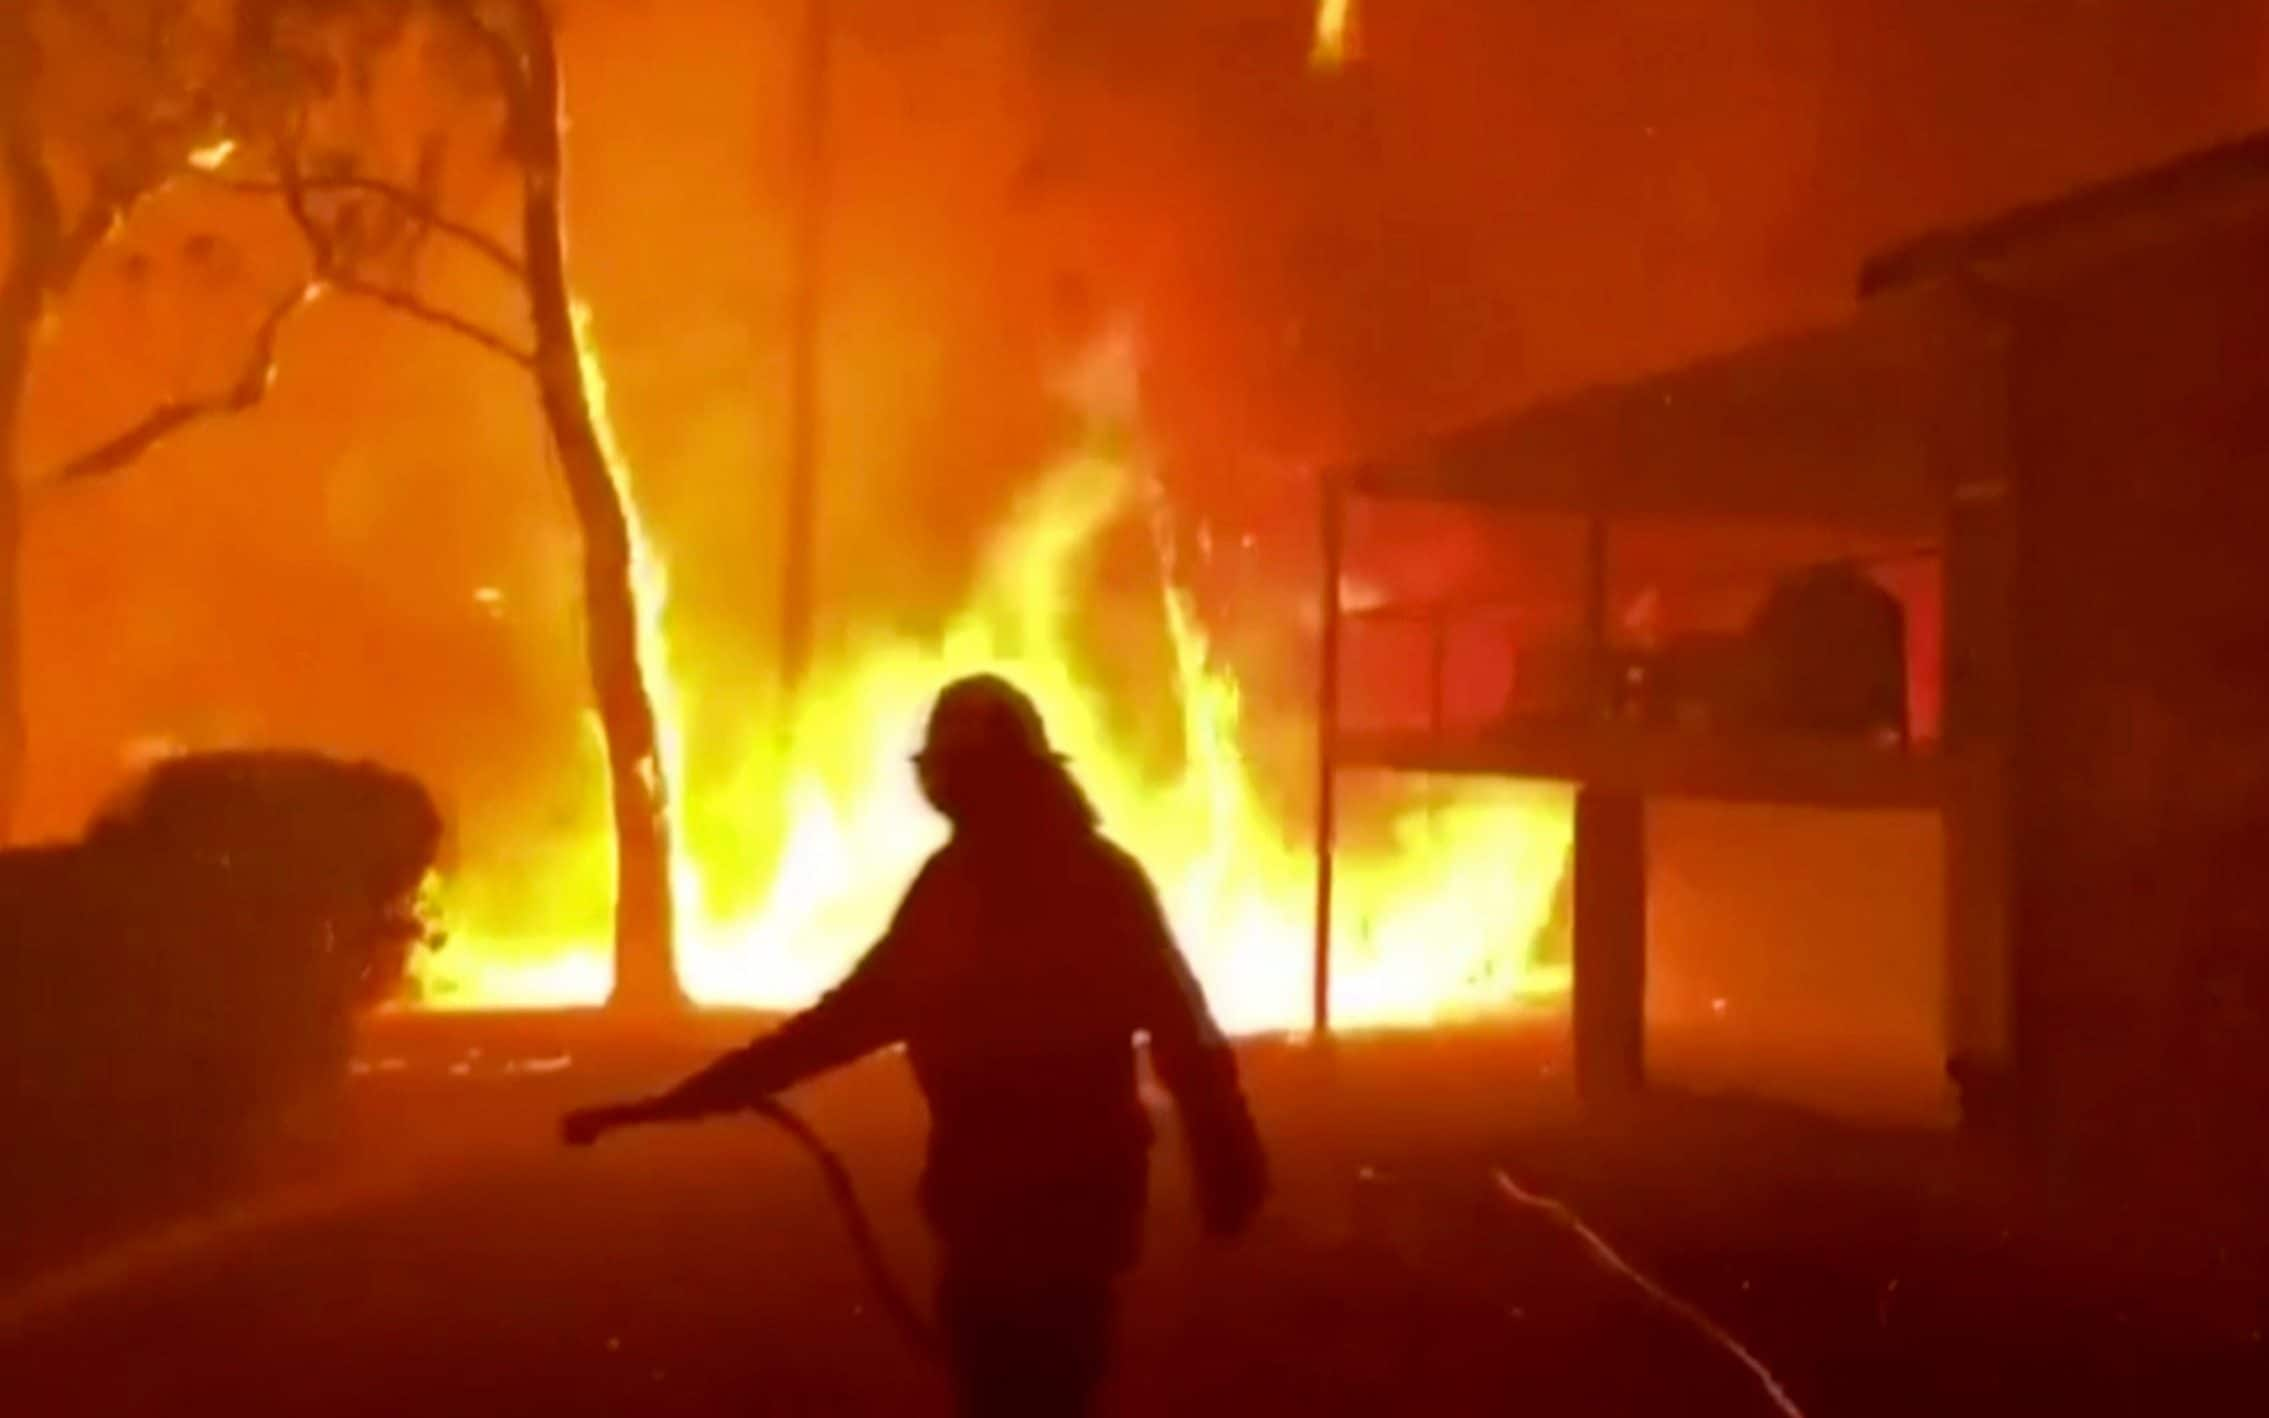 Australia braces for second heatwave as wildfires continue to rage